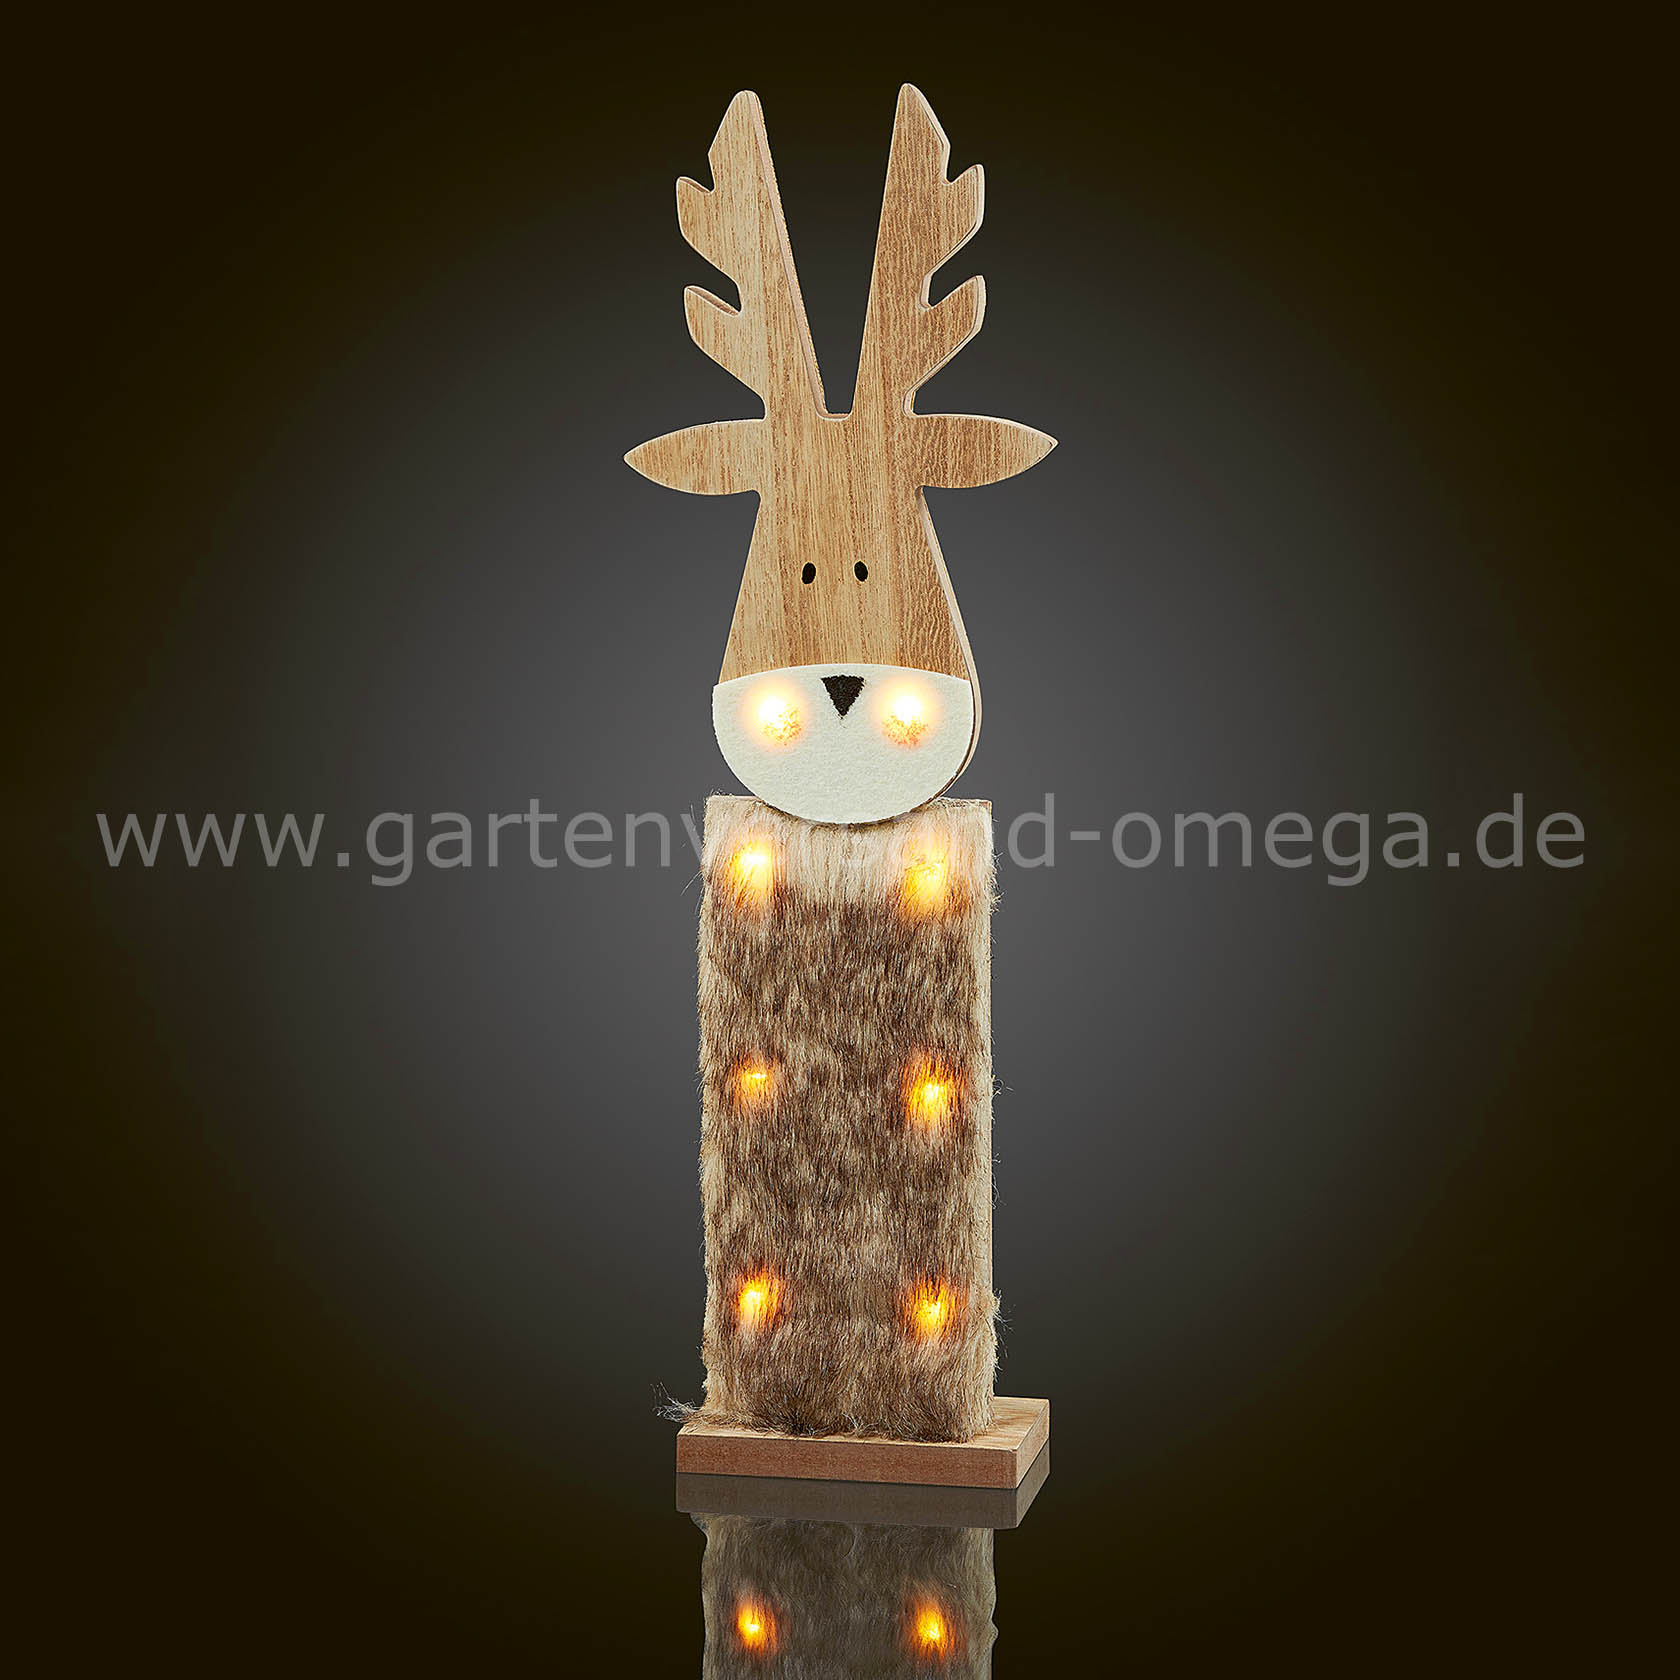 led holzrentier batteriebetriebene weihnachtsbeleuchtung beleuchtetes holzrentier. Black Bedroom Furniture Sets. Home Design Ideas